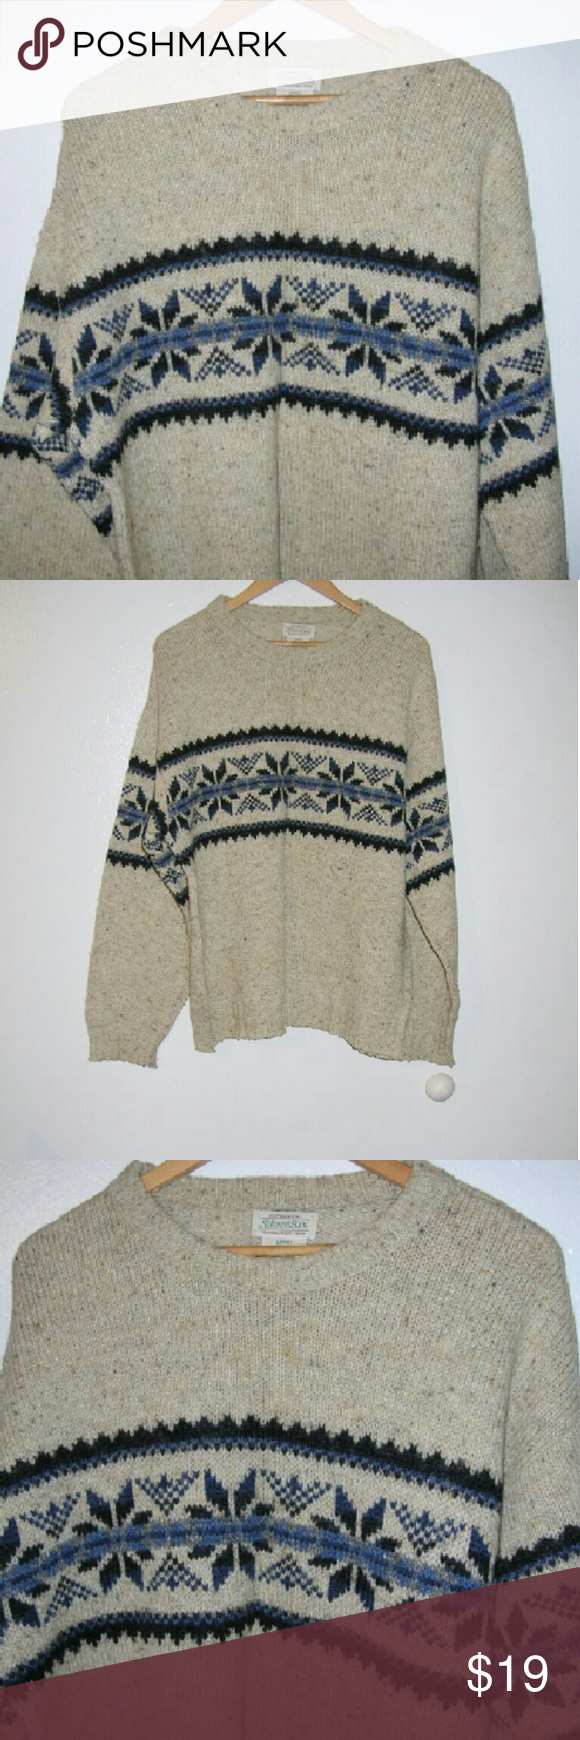 Men's St. John's Bay wool blend sweater L...q Oatmeal color with